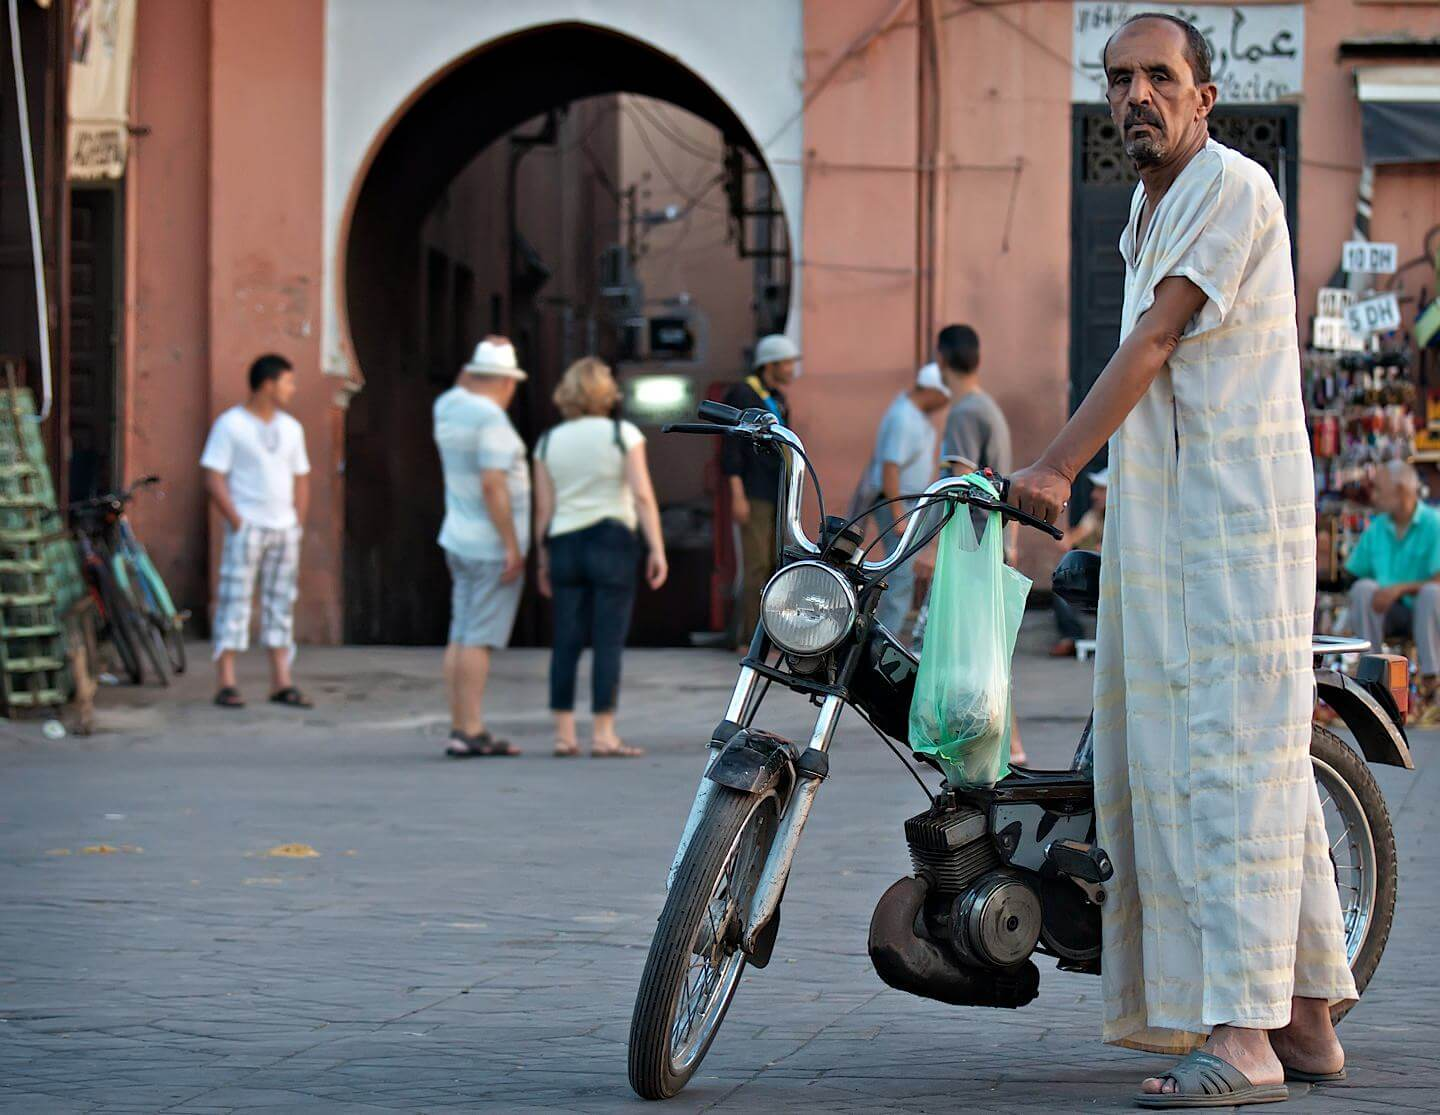 Portrait of a man dressed in djellaba with a moped